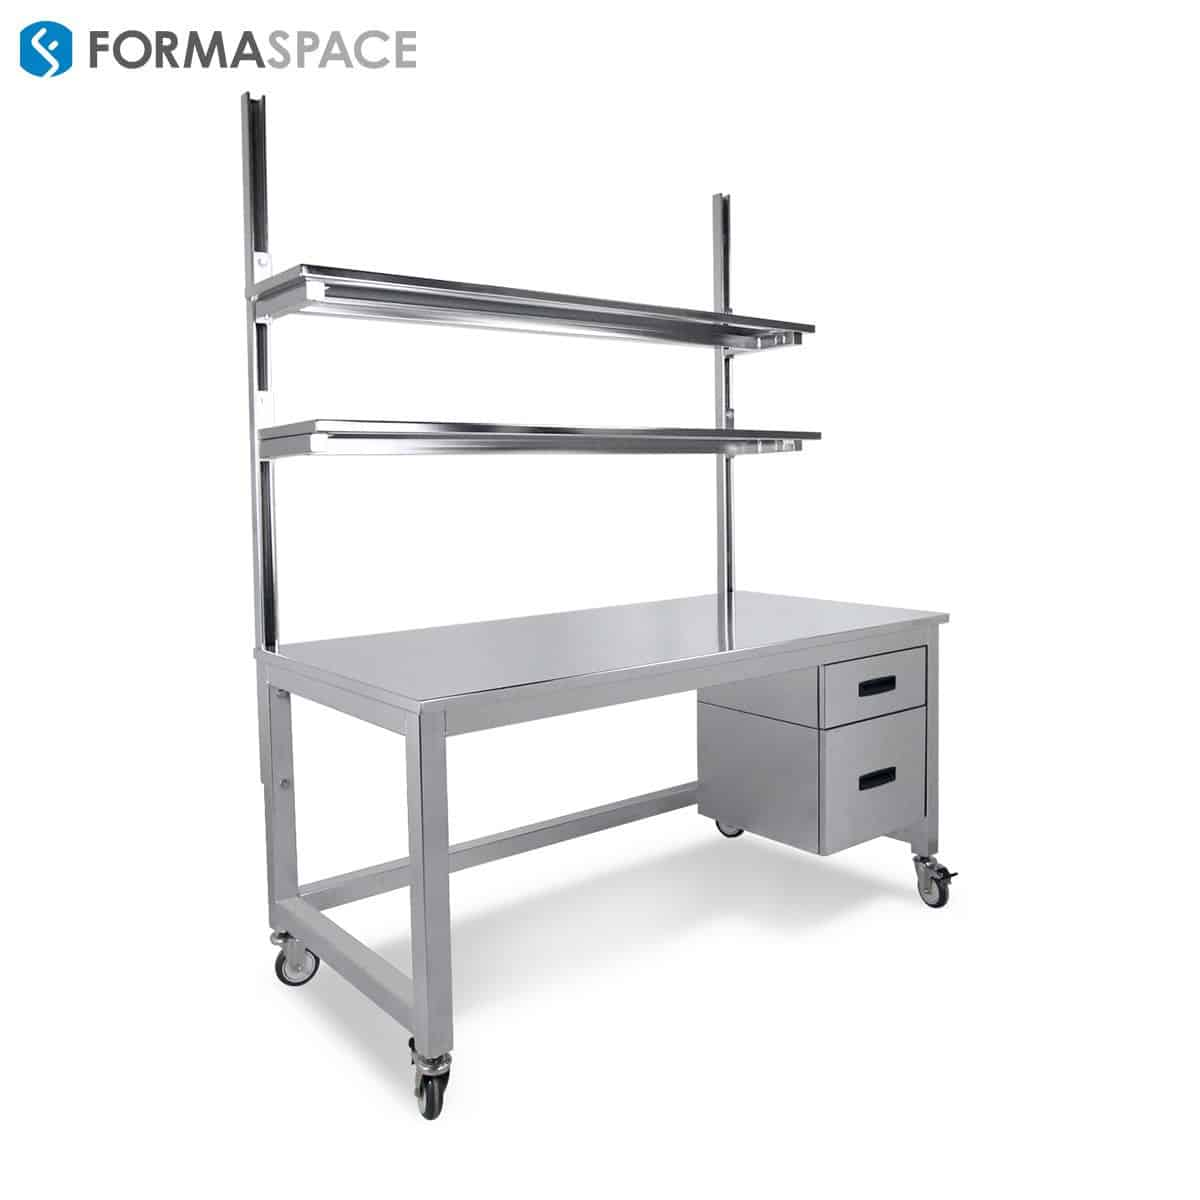 Stainless Steel Benchmarx with 2 Drawers